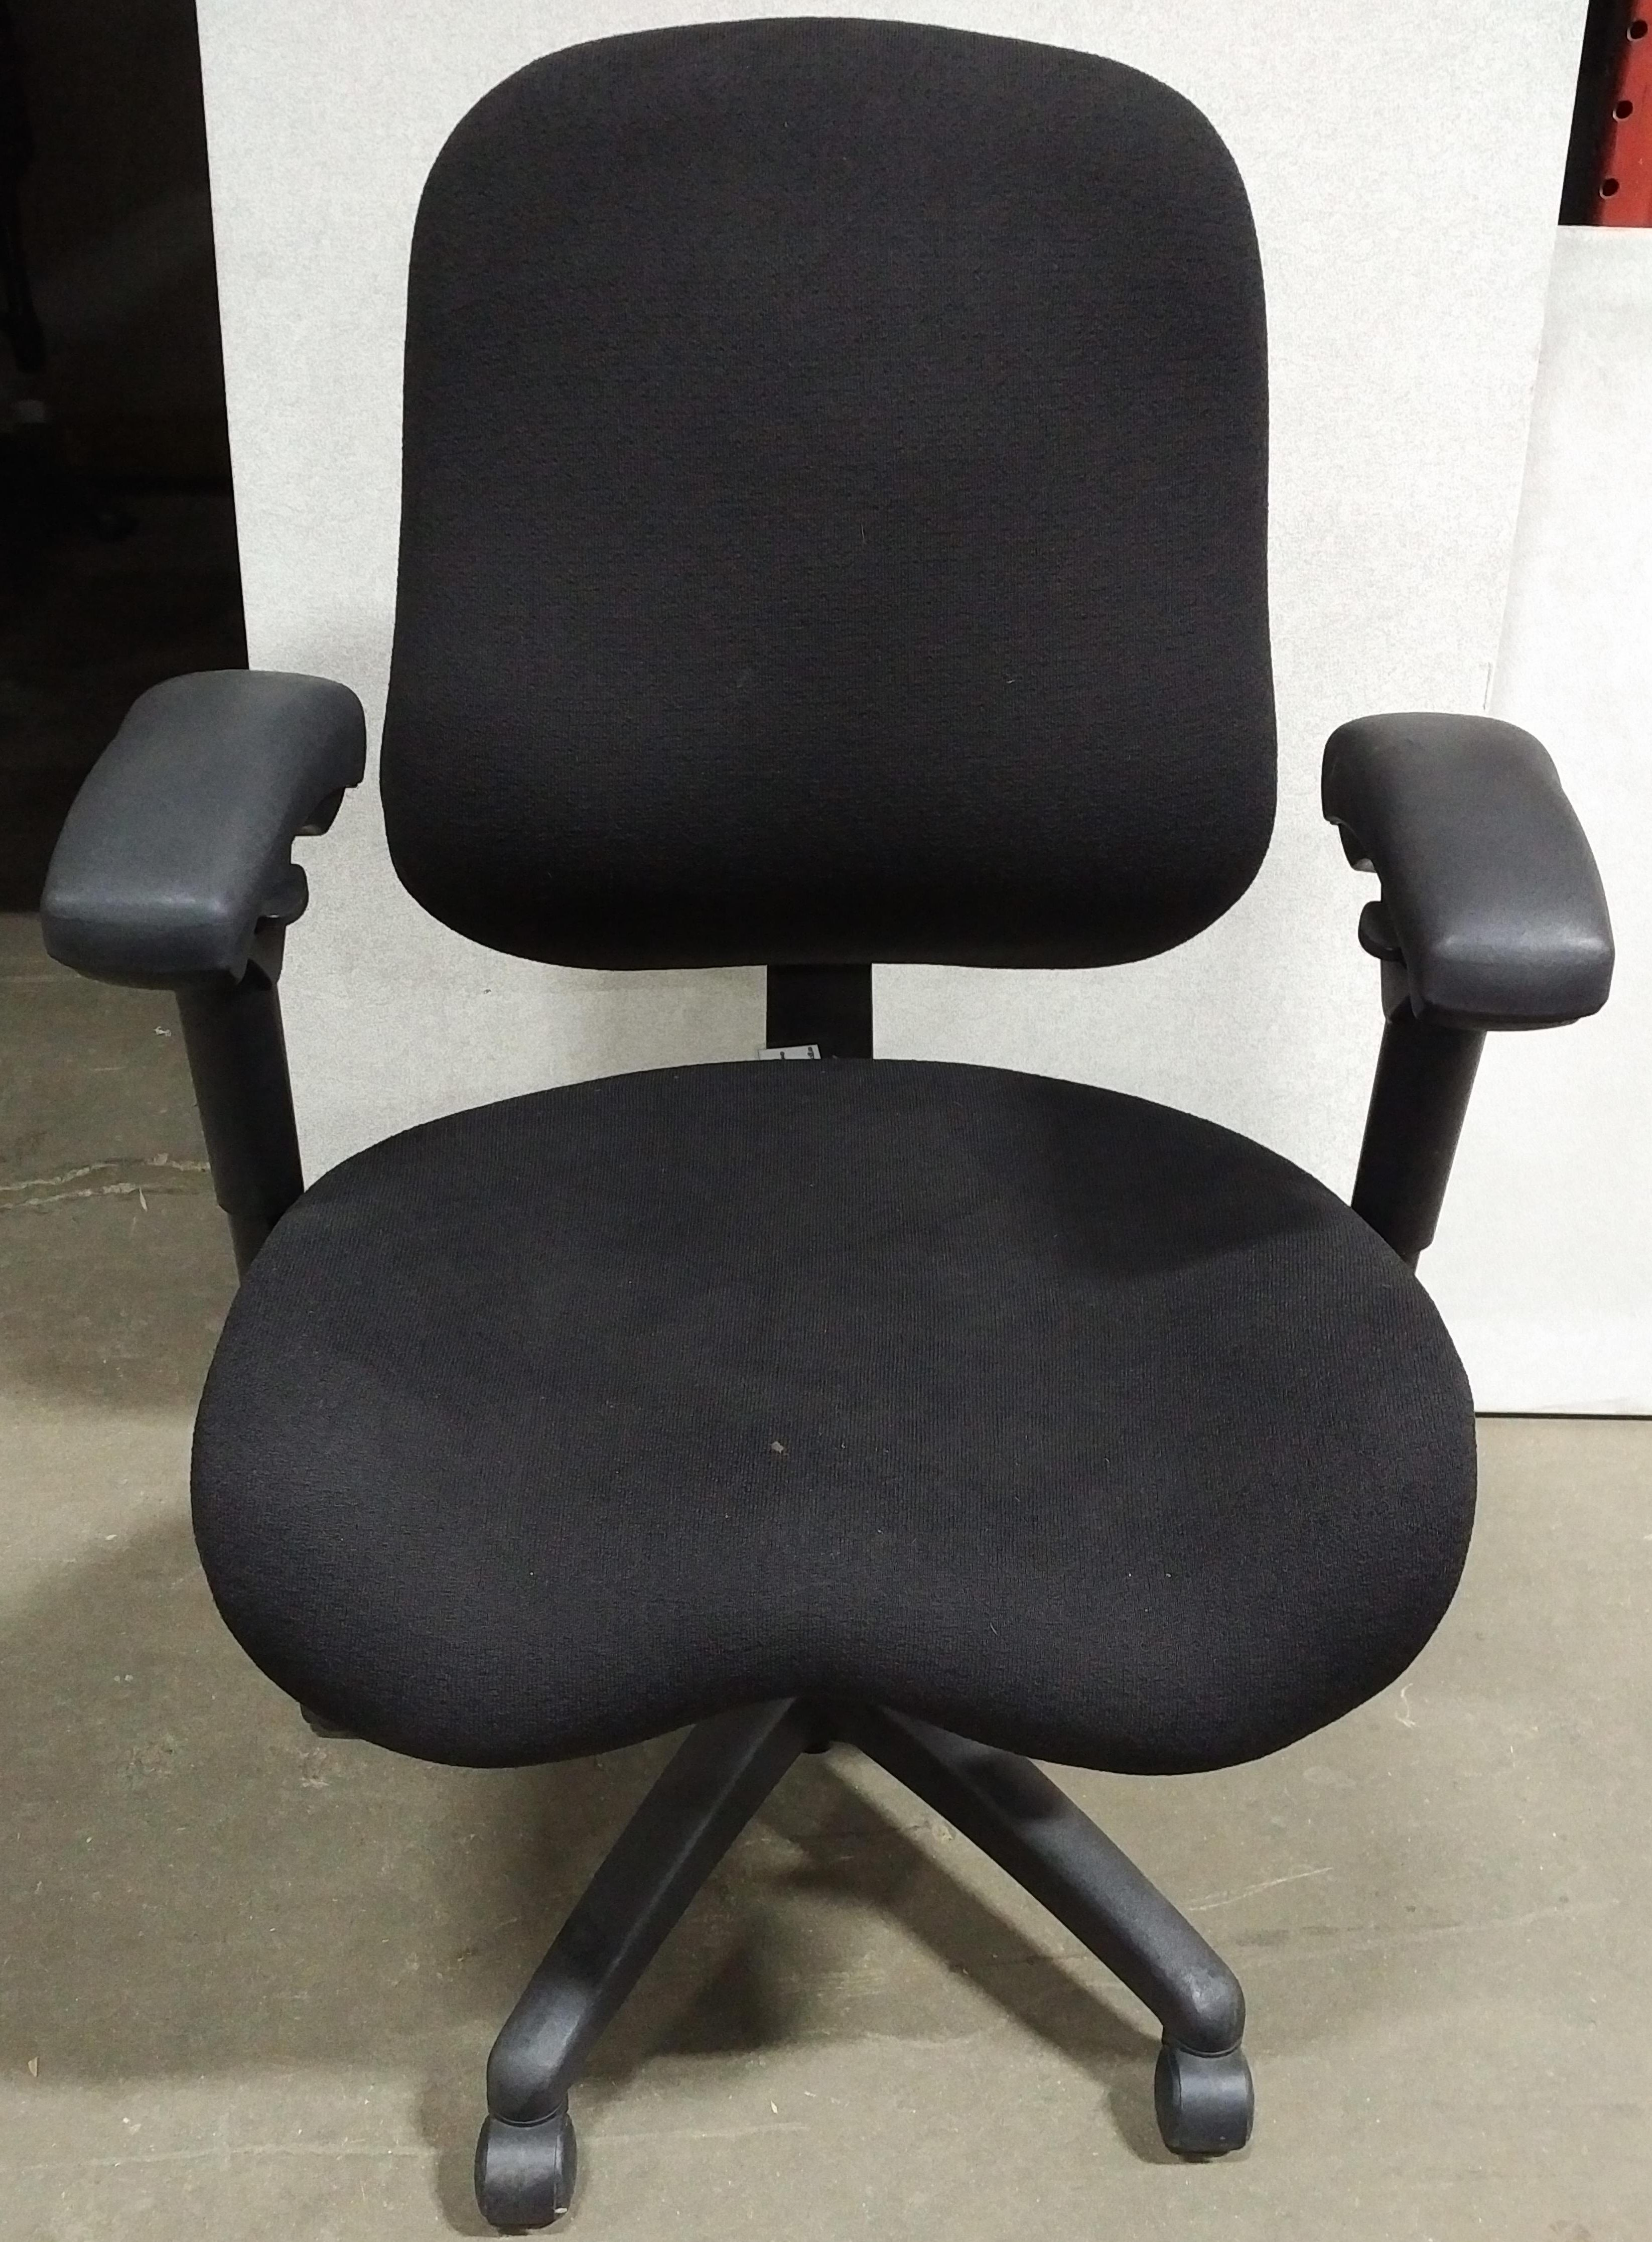 BodyBilt J2502 Big and Tall Task chair ... : big and tall task chairs - Cheerinfomania.Com